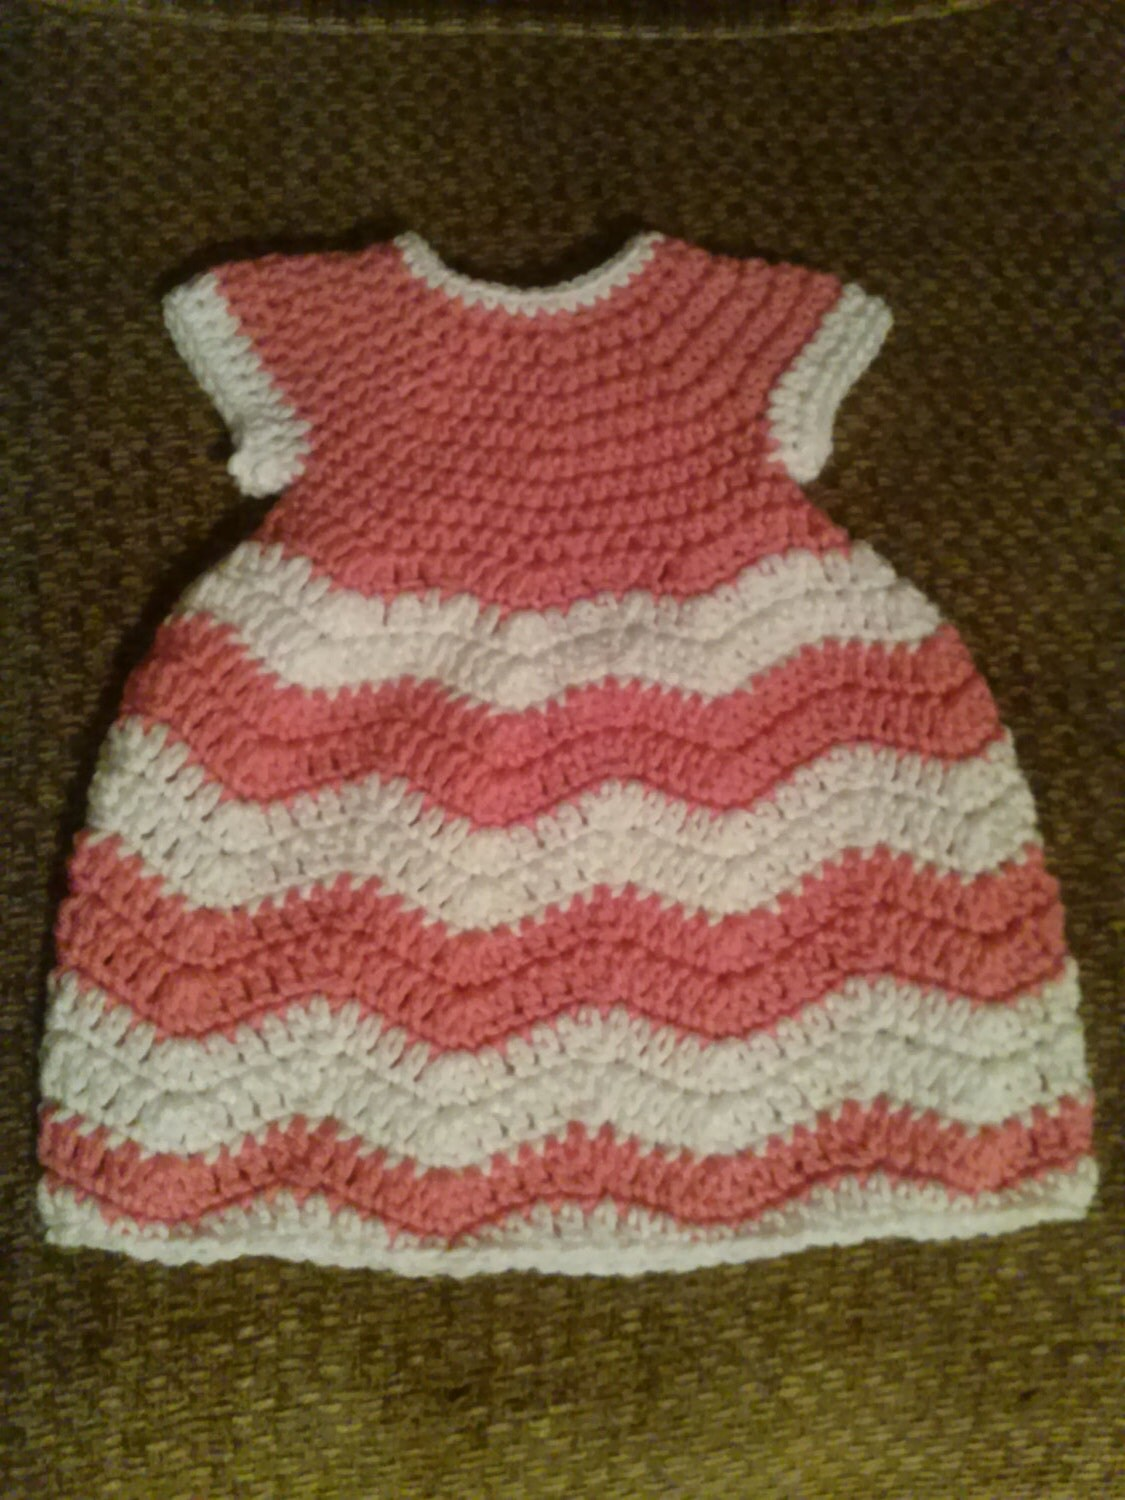 Crocheted Chevron 0-3 mo Baby Dress